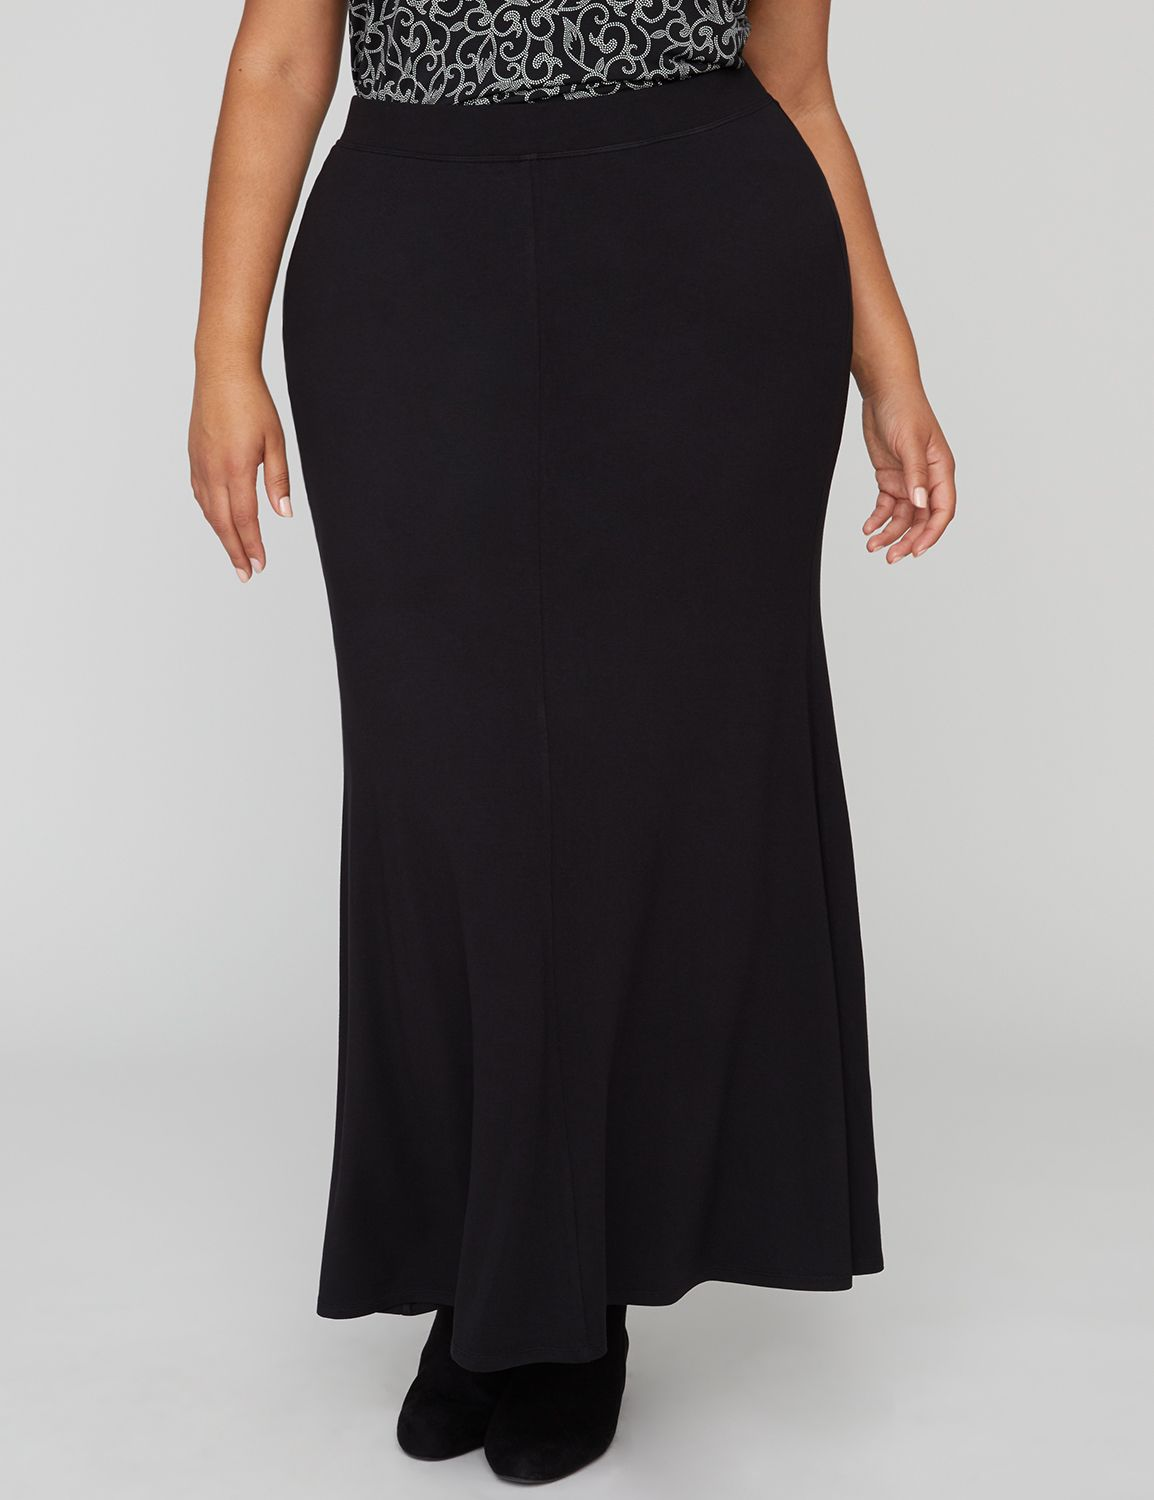 AnyWear Maxi Mermaid Skirt